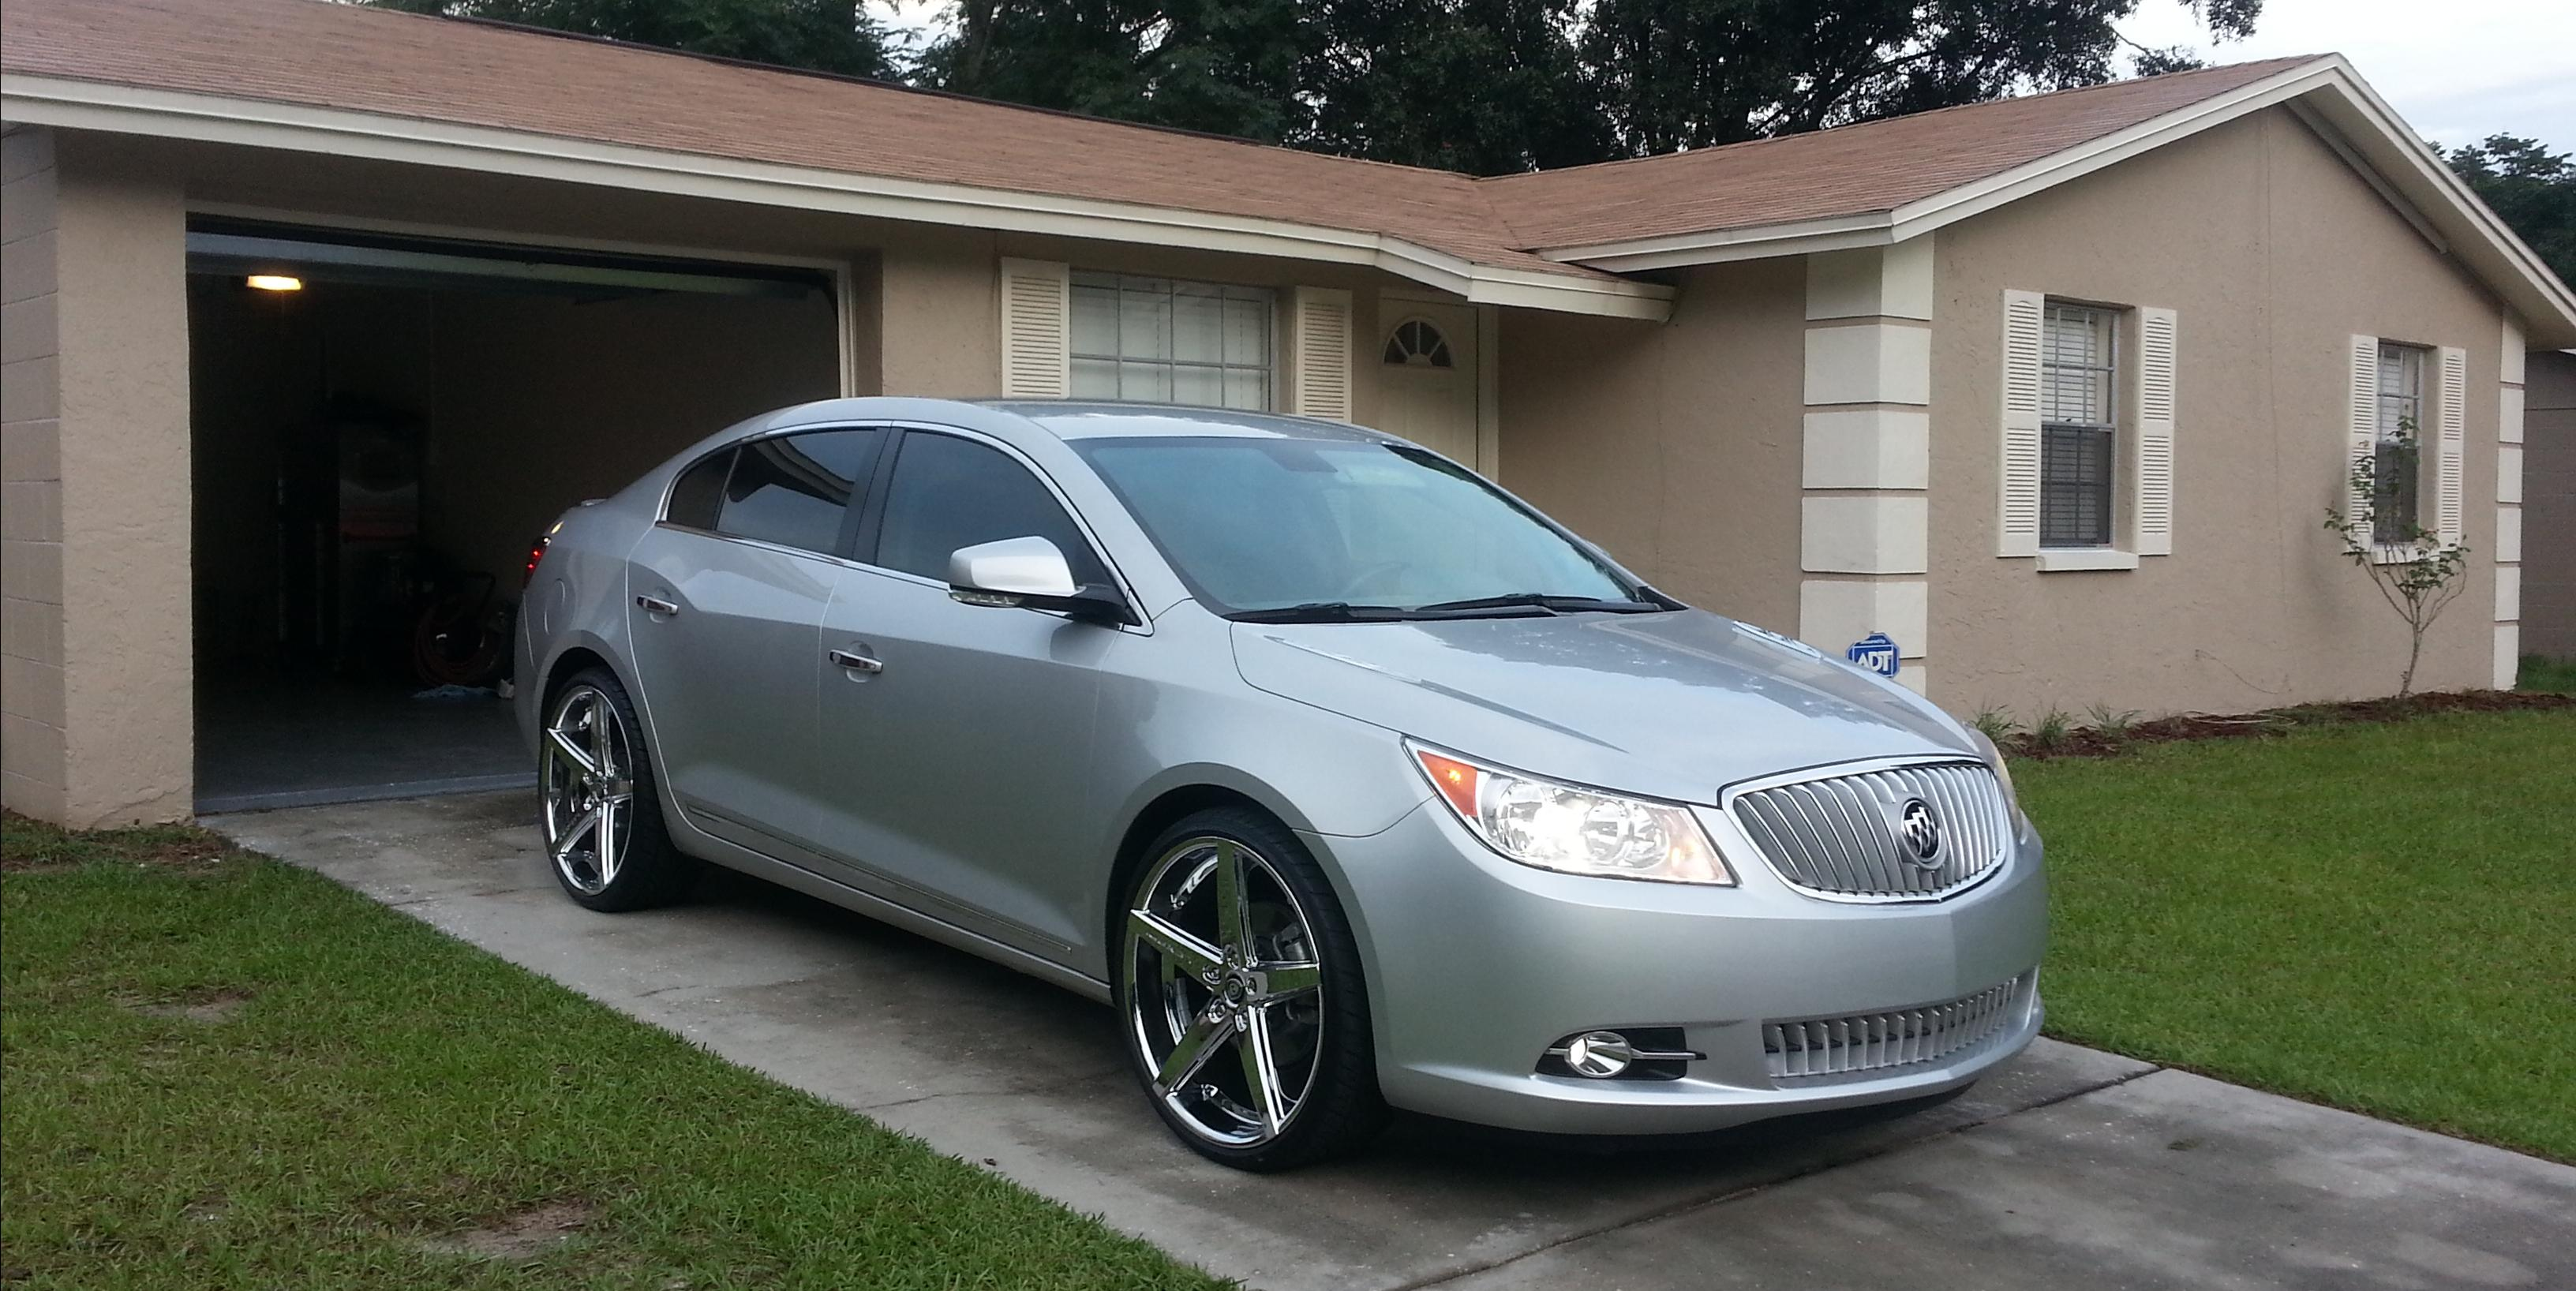 crisz 2012 buick lacrosse specs photos modification info at cardomain. Black Bedroom Furniture Sets. Home Design Ideas